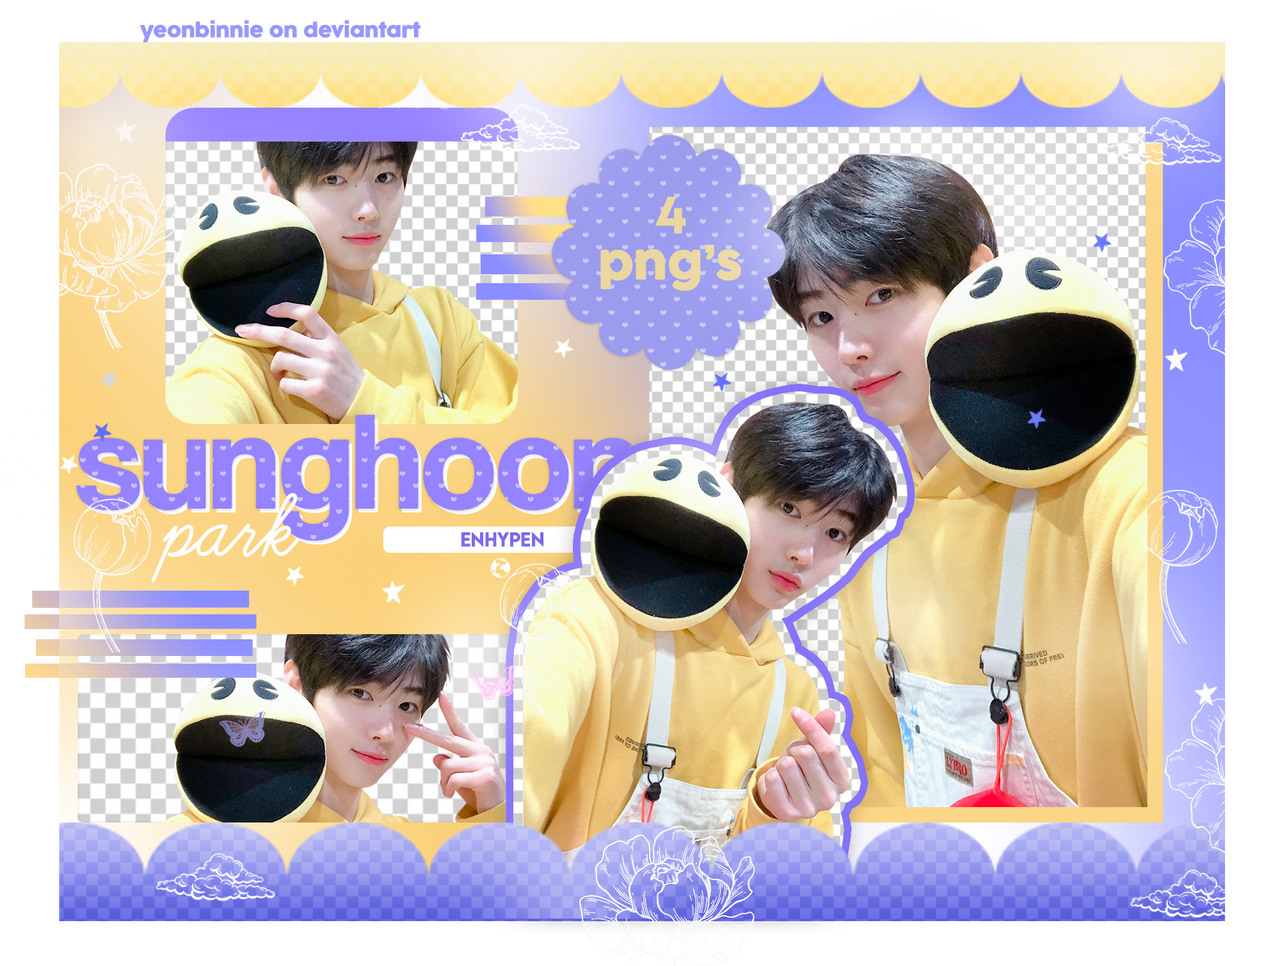 Pack Png 011 Park Sunghoon Enhypen By Yeonbinnie On Deviantart